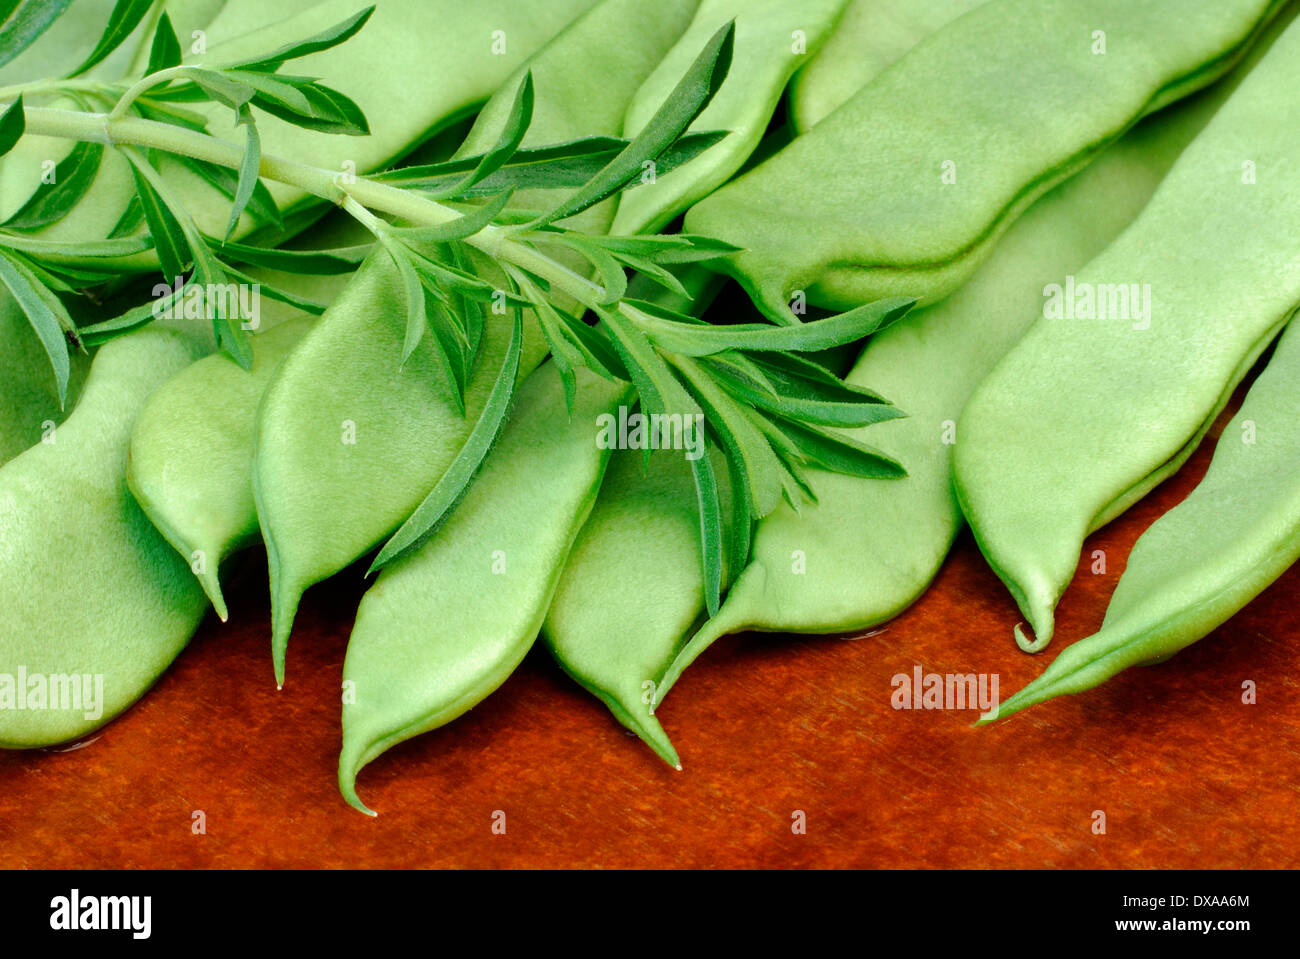 Beans and Summer Savory Stock Photo